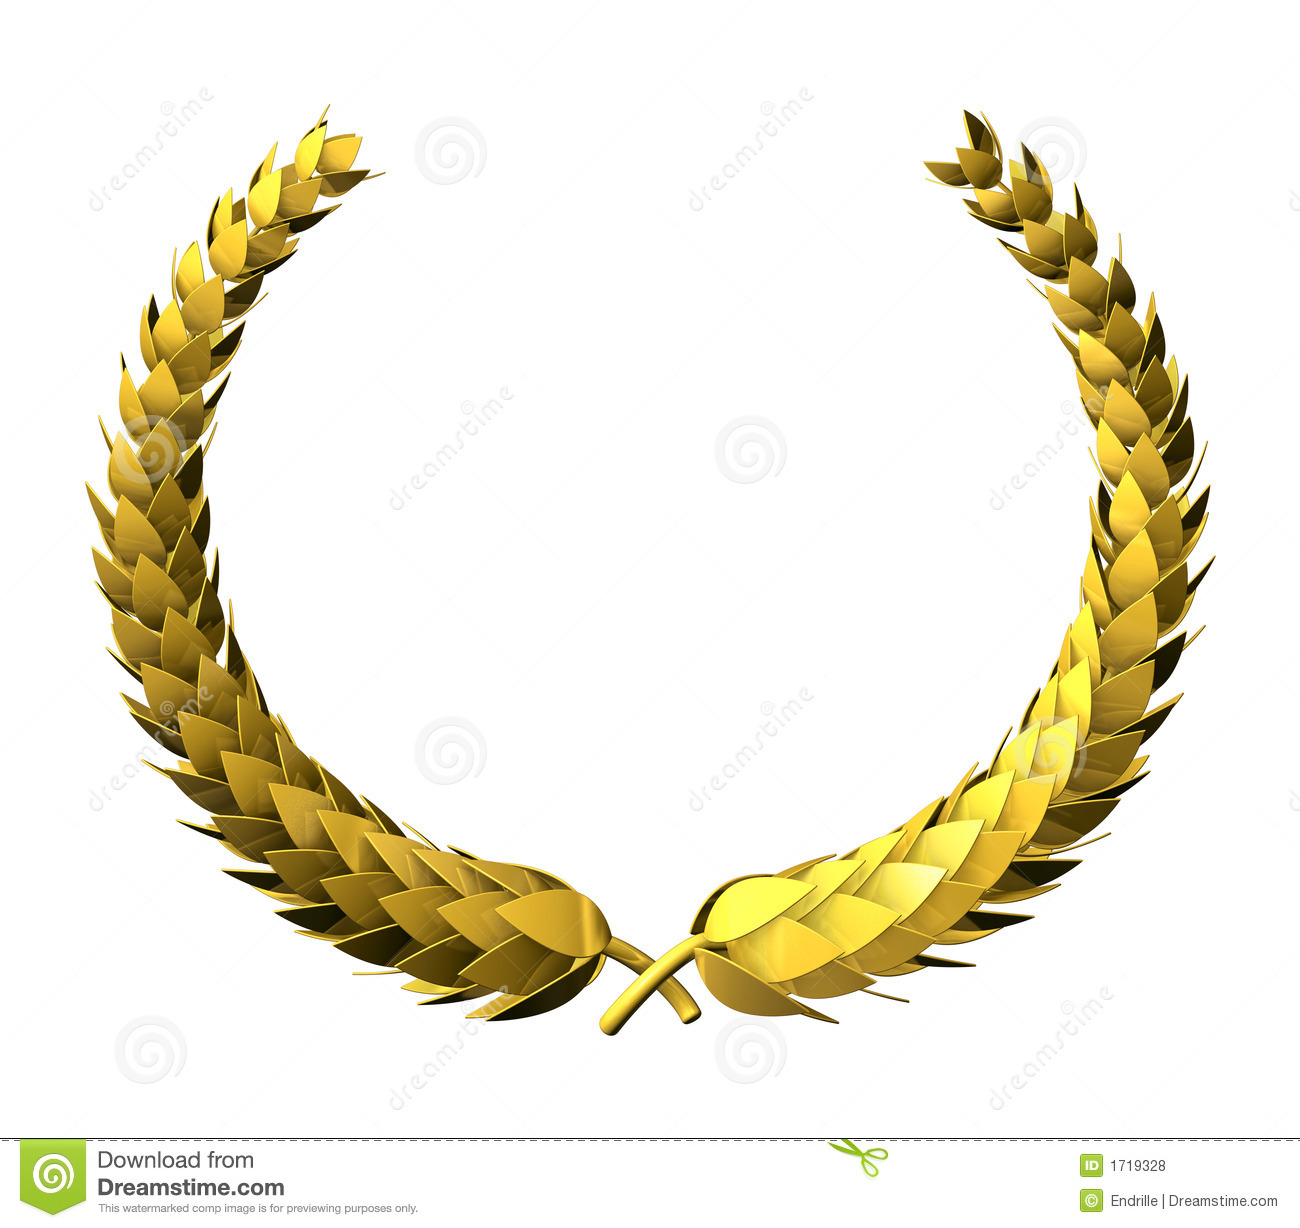 Golden Laurel Wreath Royalty Free Stock Photos Image